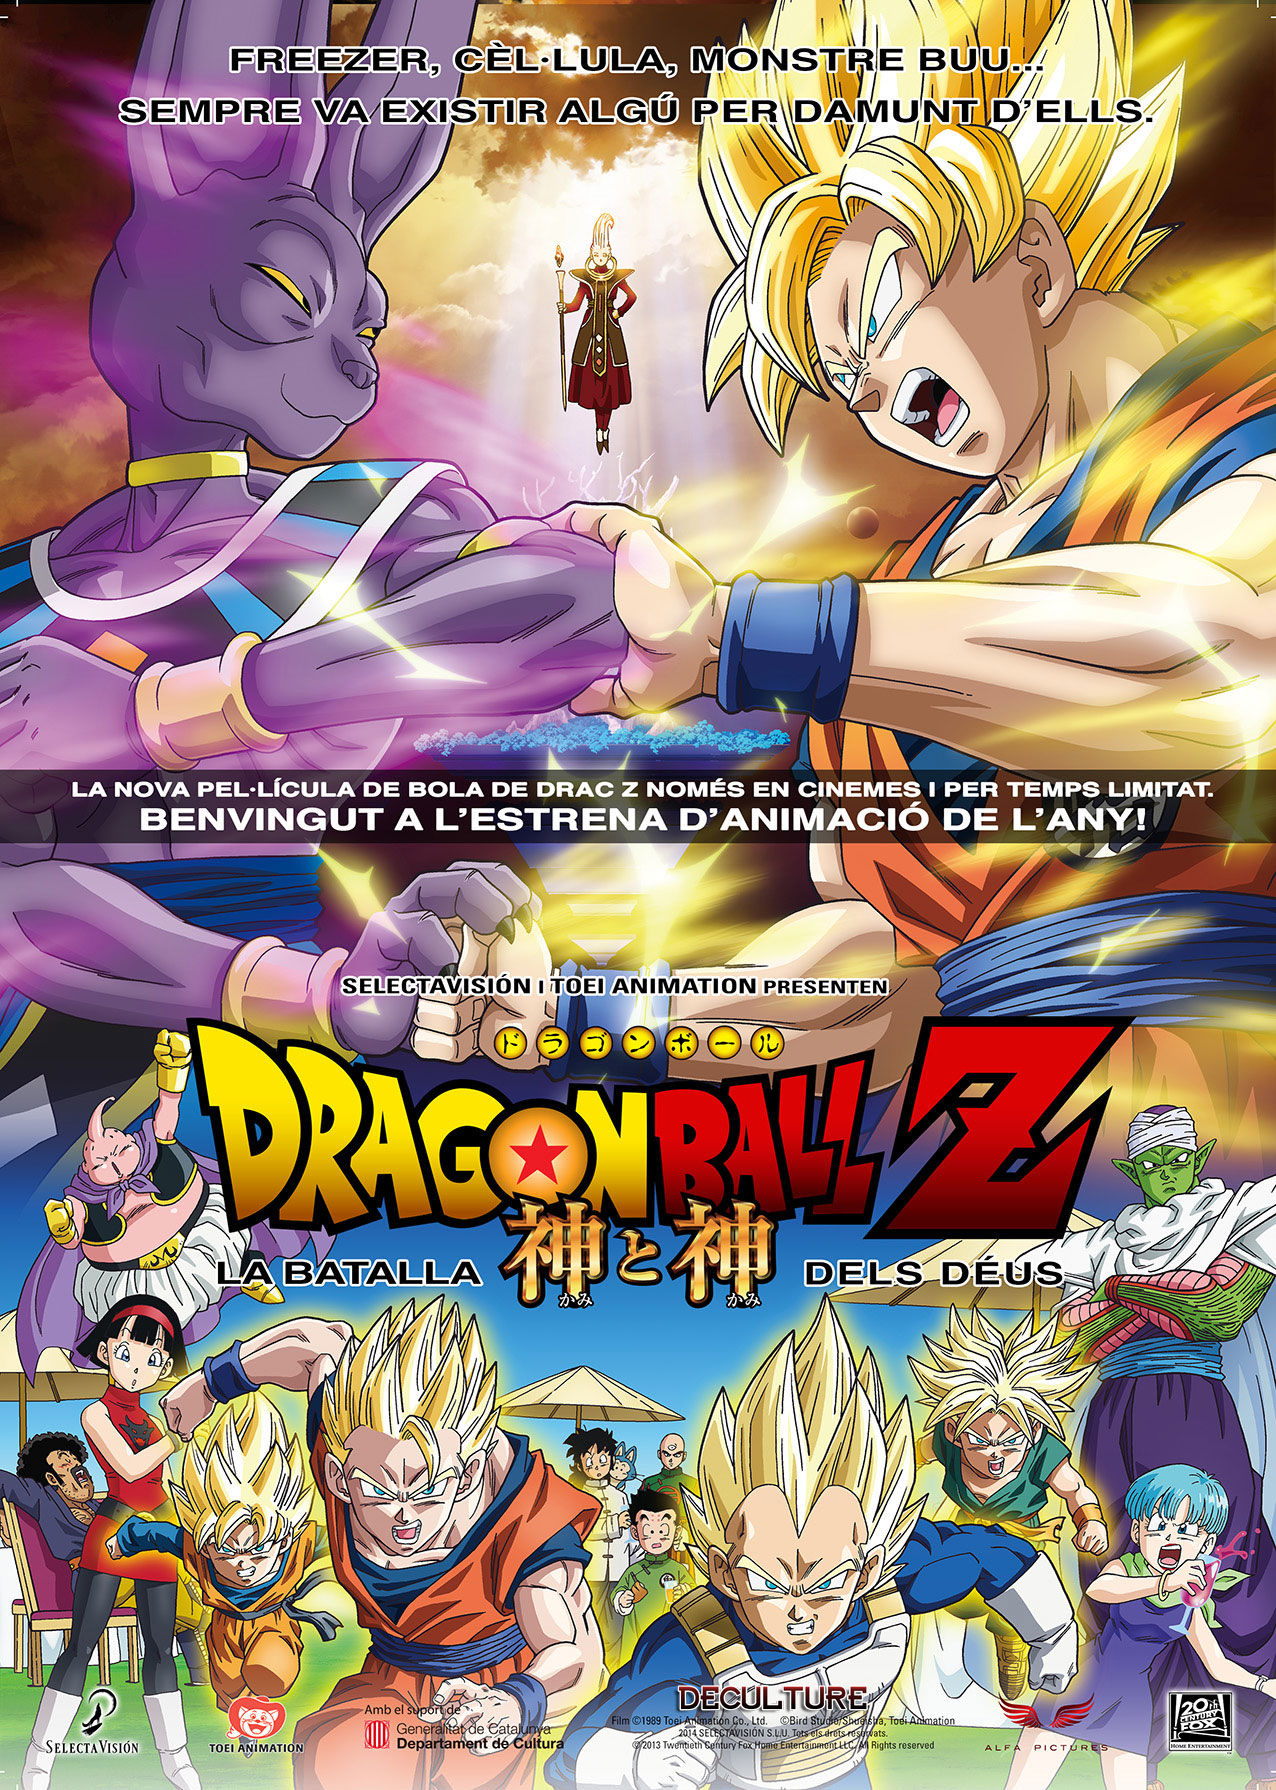 dragon-ball-z-la-batalla-dels-deus-flyer-01